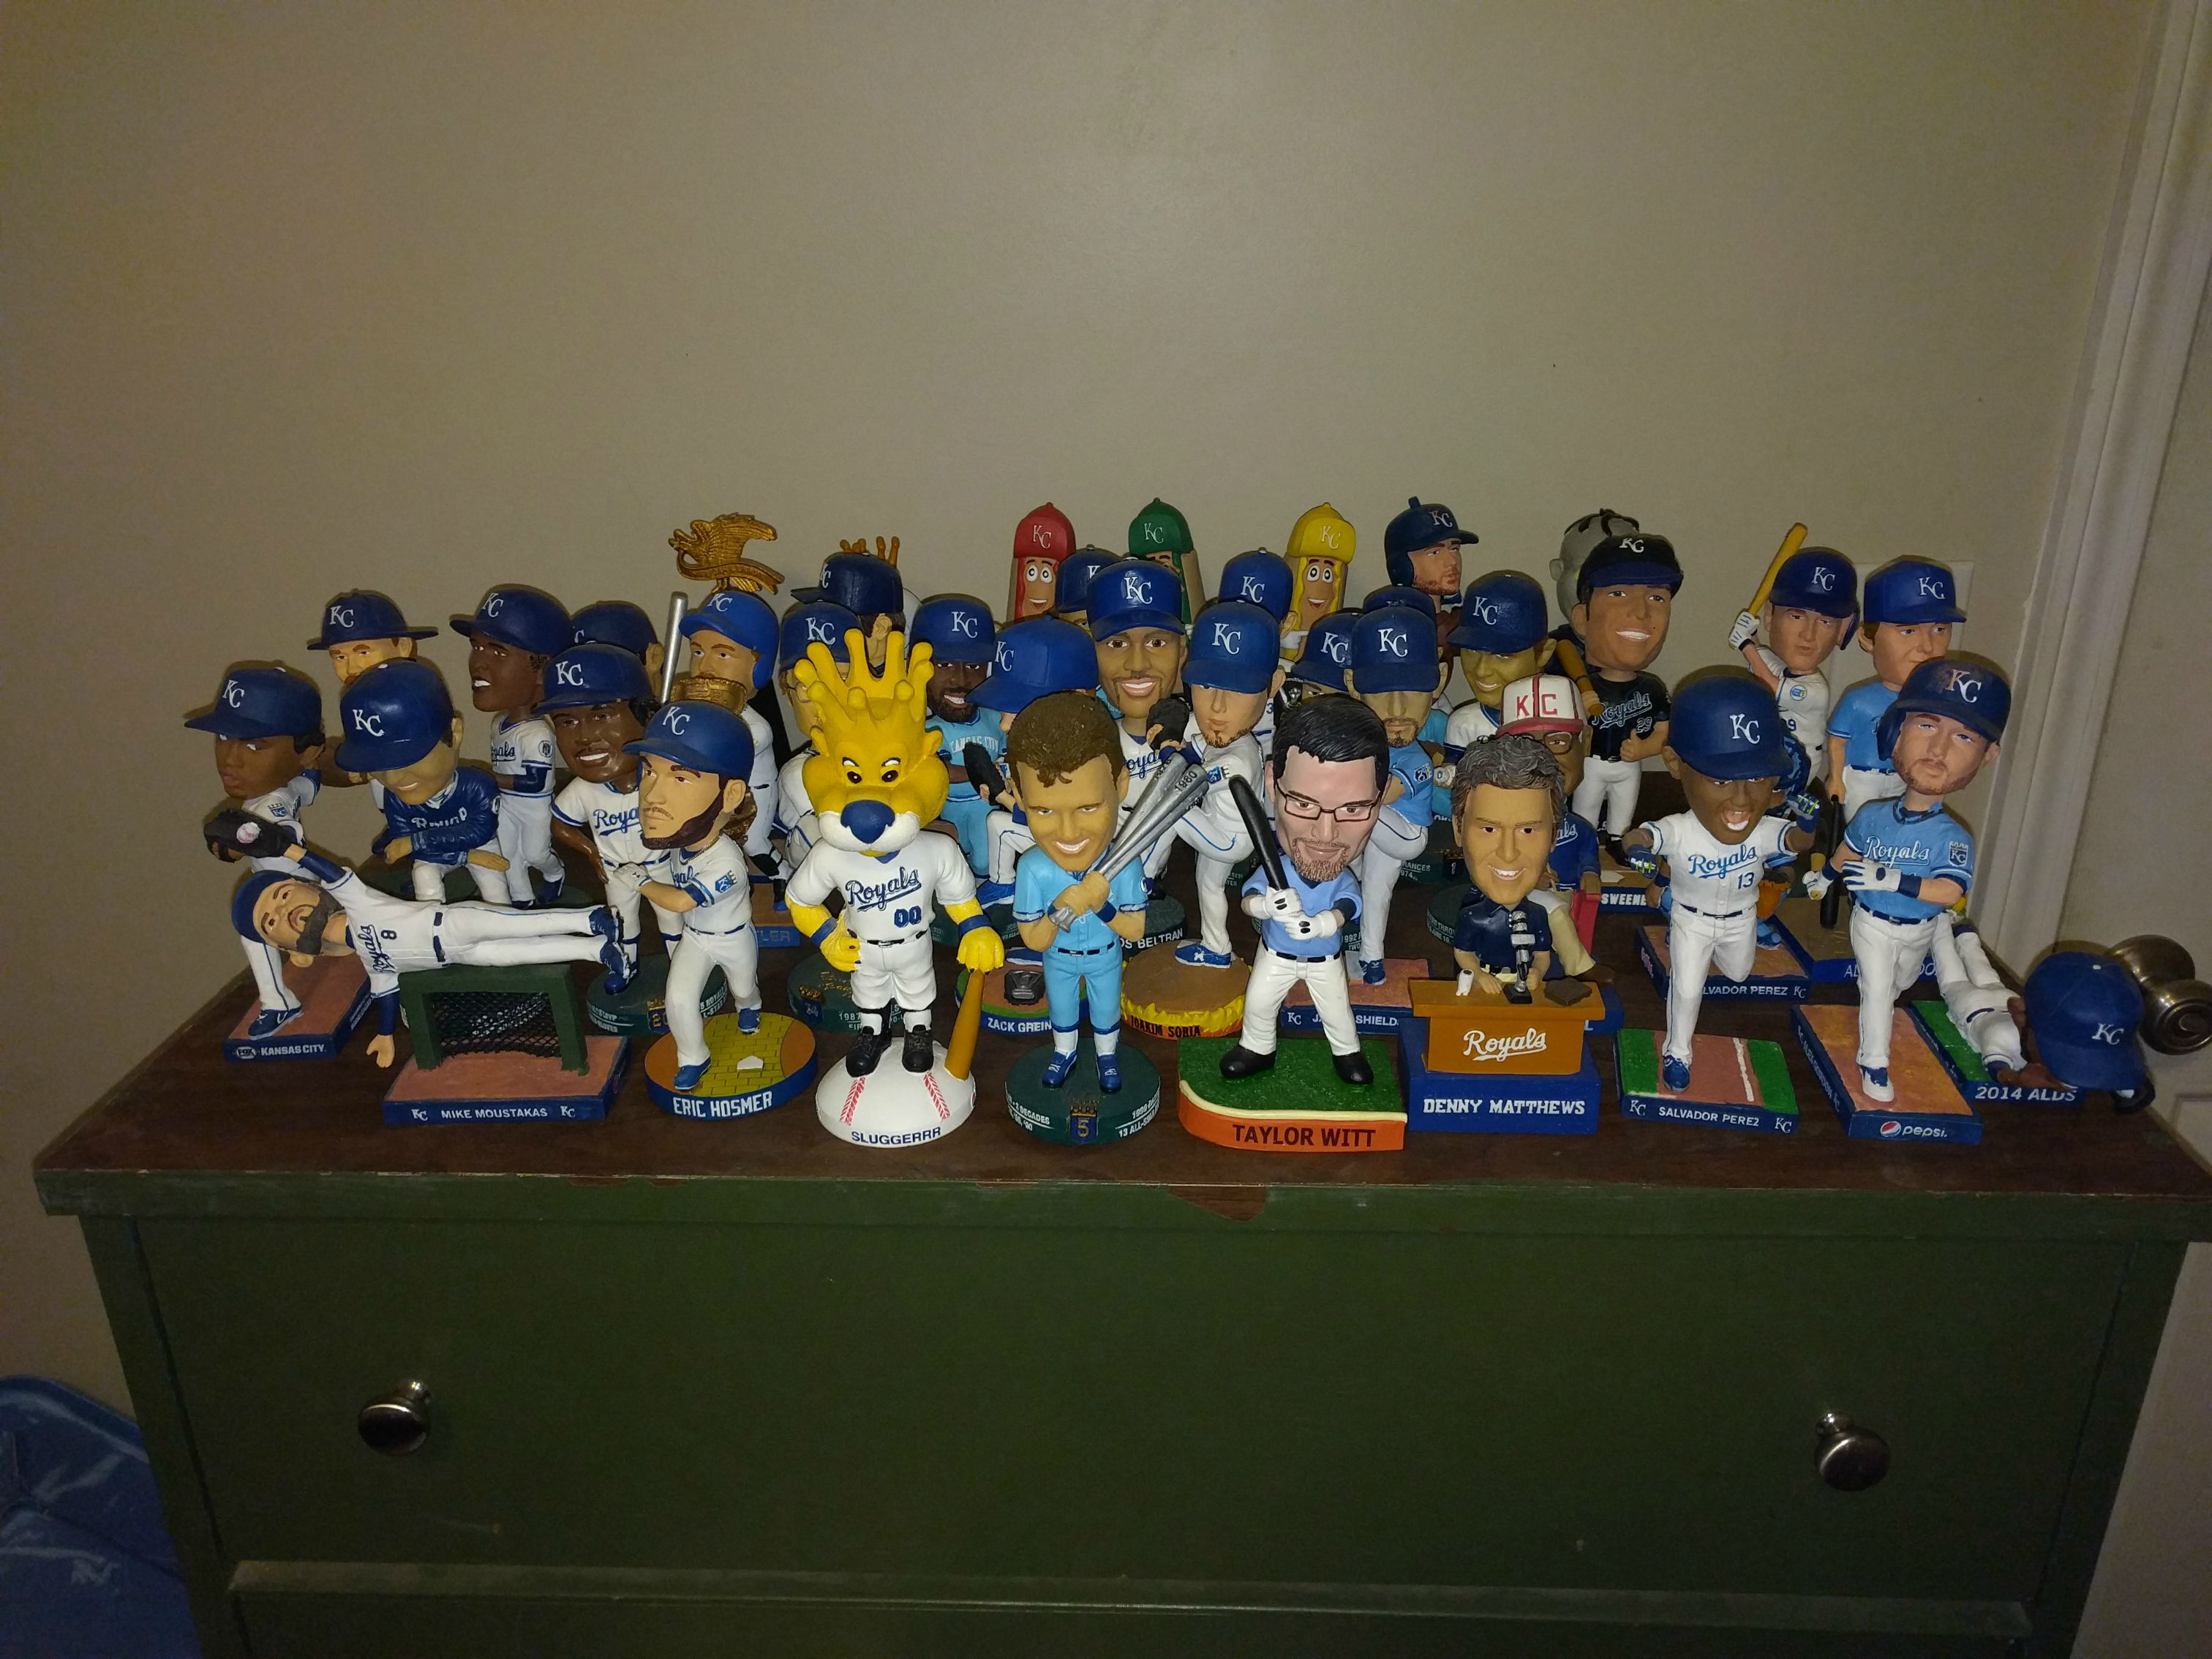 I finally completed my Royals bobblehead collection ...